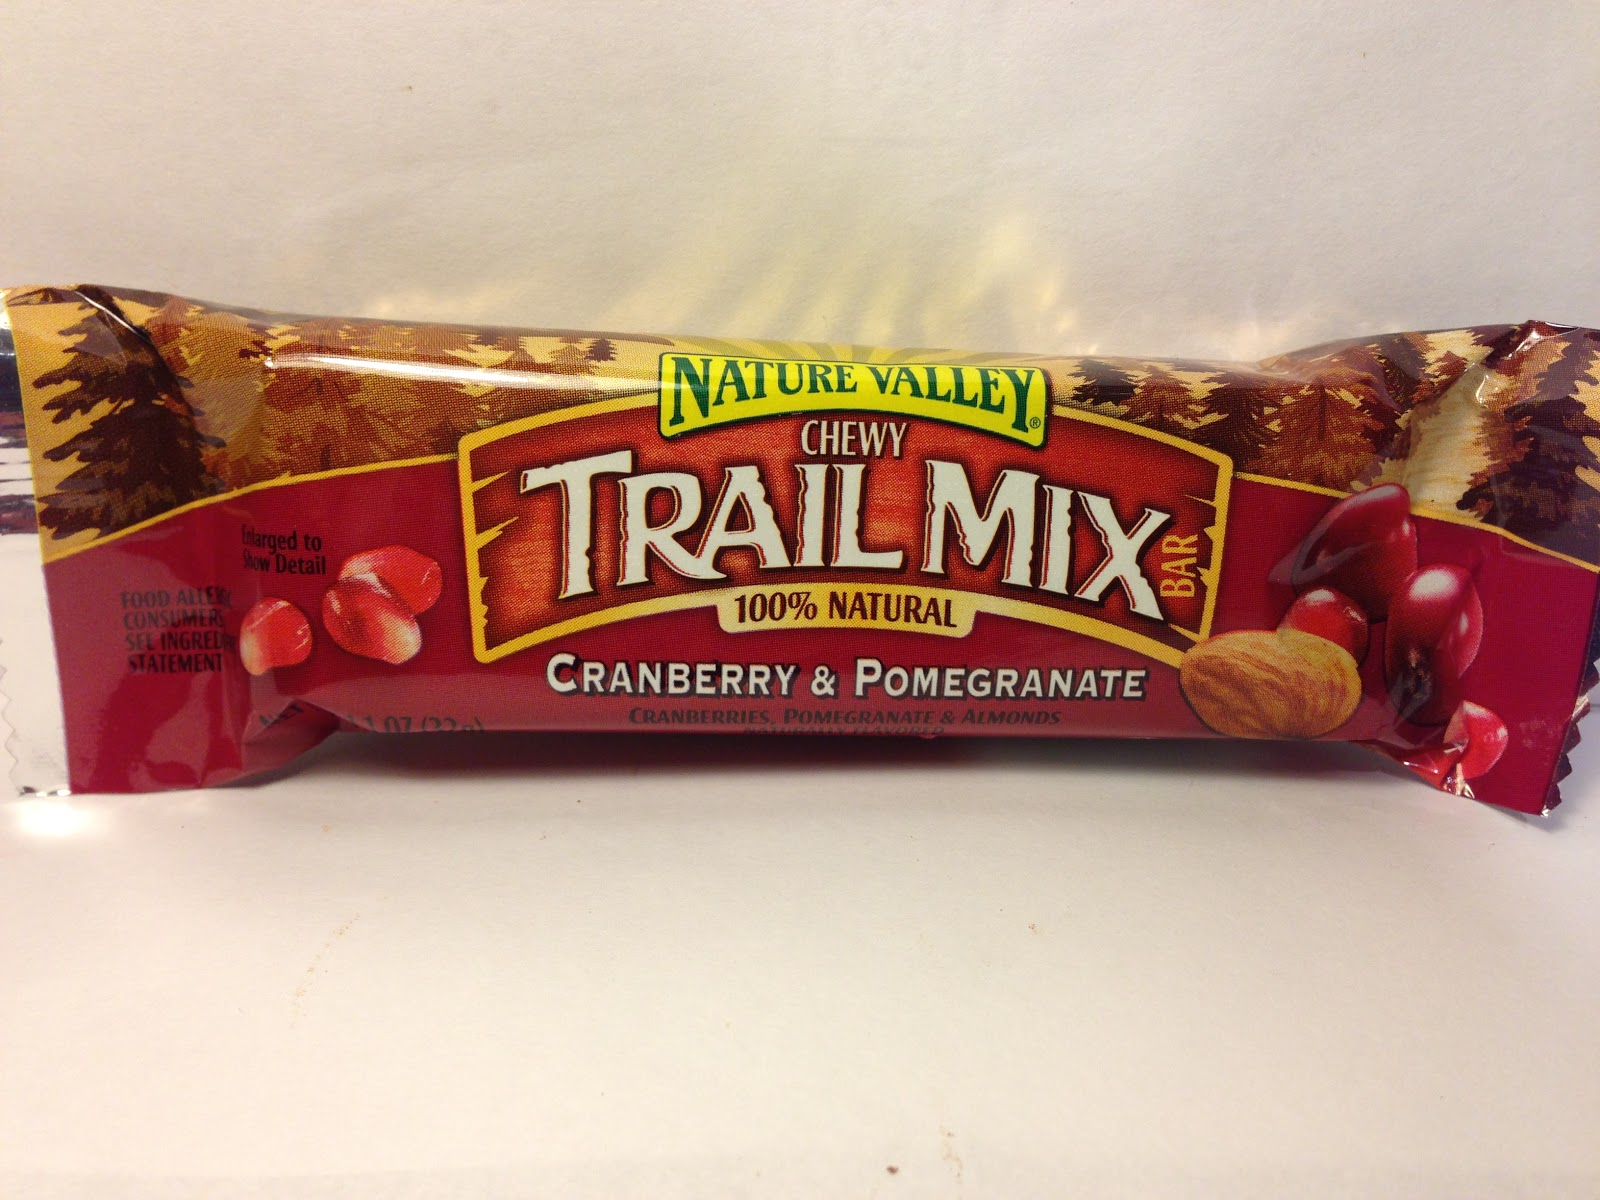 ... Valley Chewy Trail Mix Cranberry & Pomegranate Bar « Crazy Food Dude